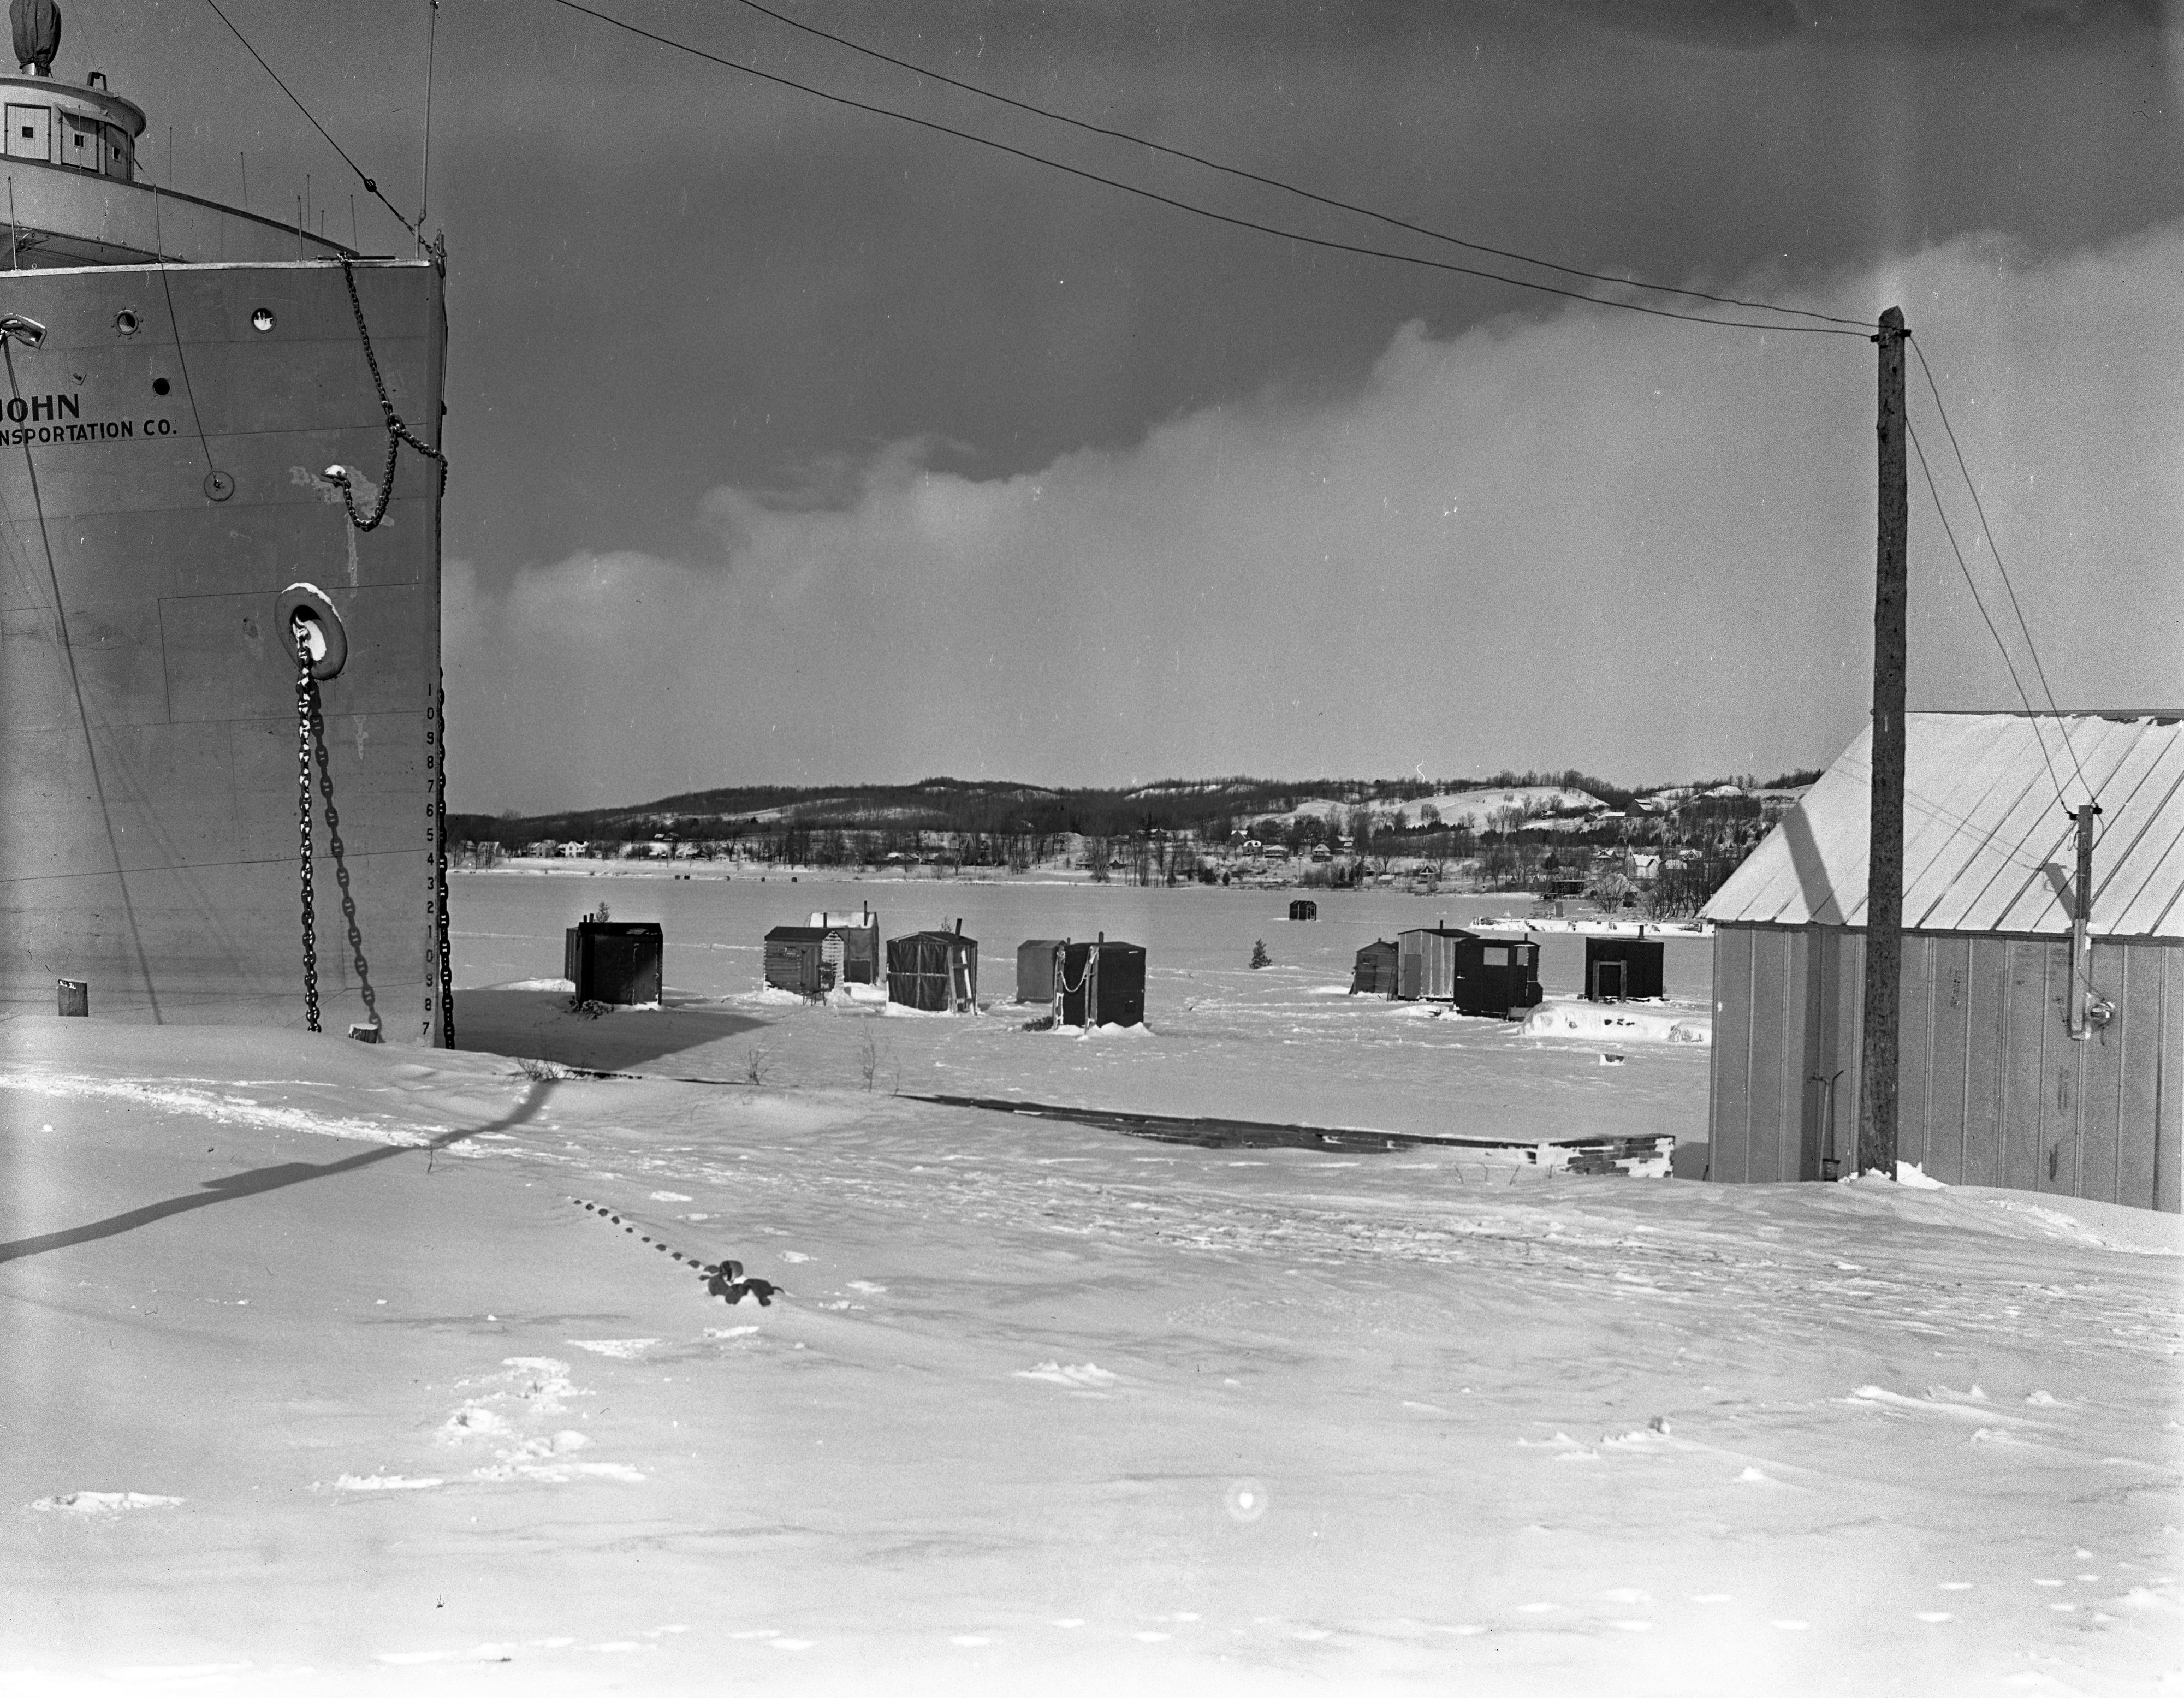 'Smeltania' Ice Shanty Outpost On Lake Charlevoix, January 1940 image